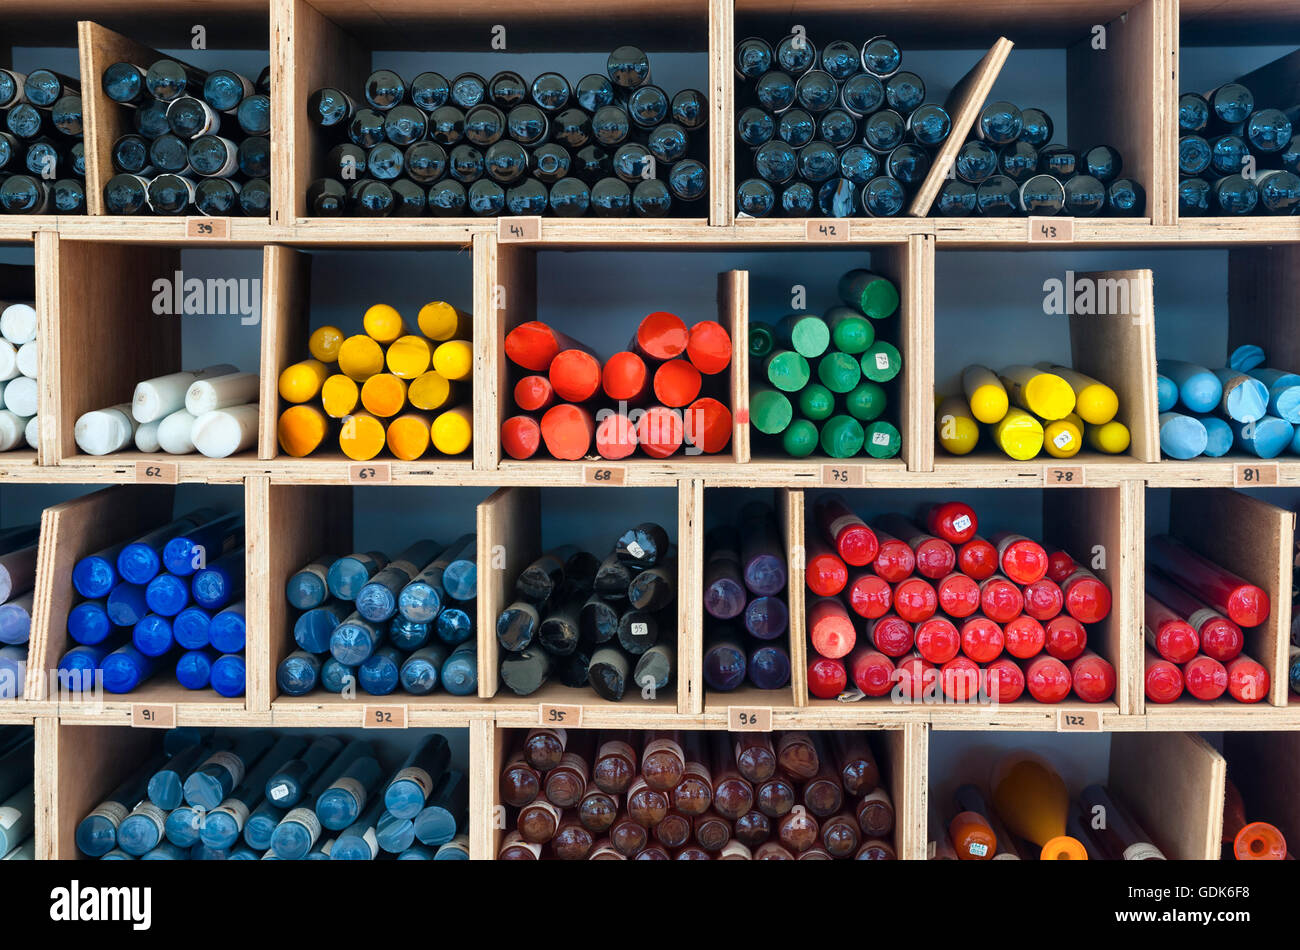 UK. Rods of coloured glass, known as 'cane', awaiting use in a glassblowing studio - Stock Image